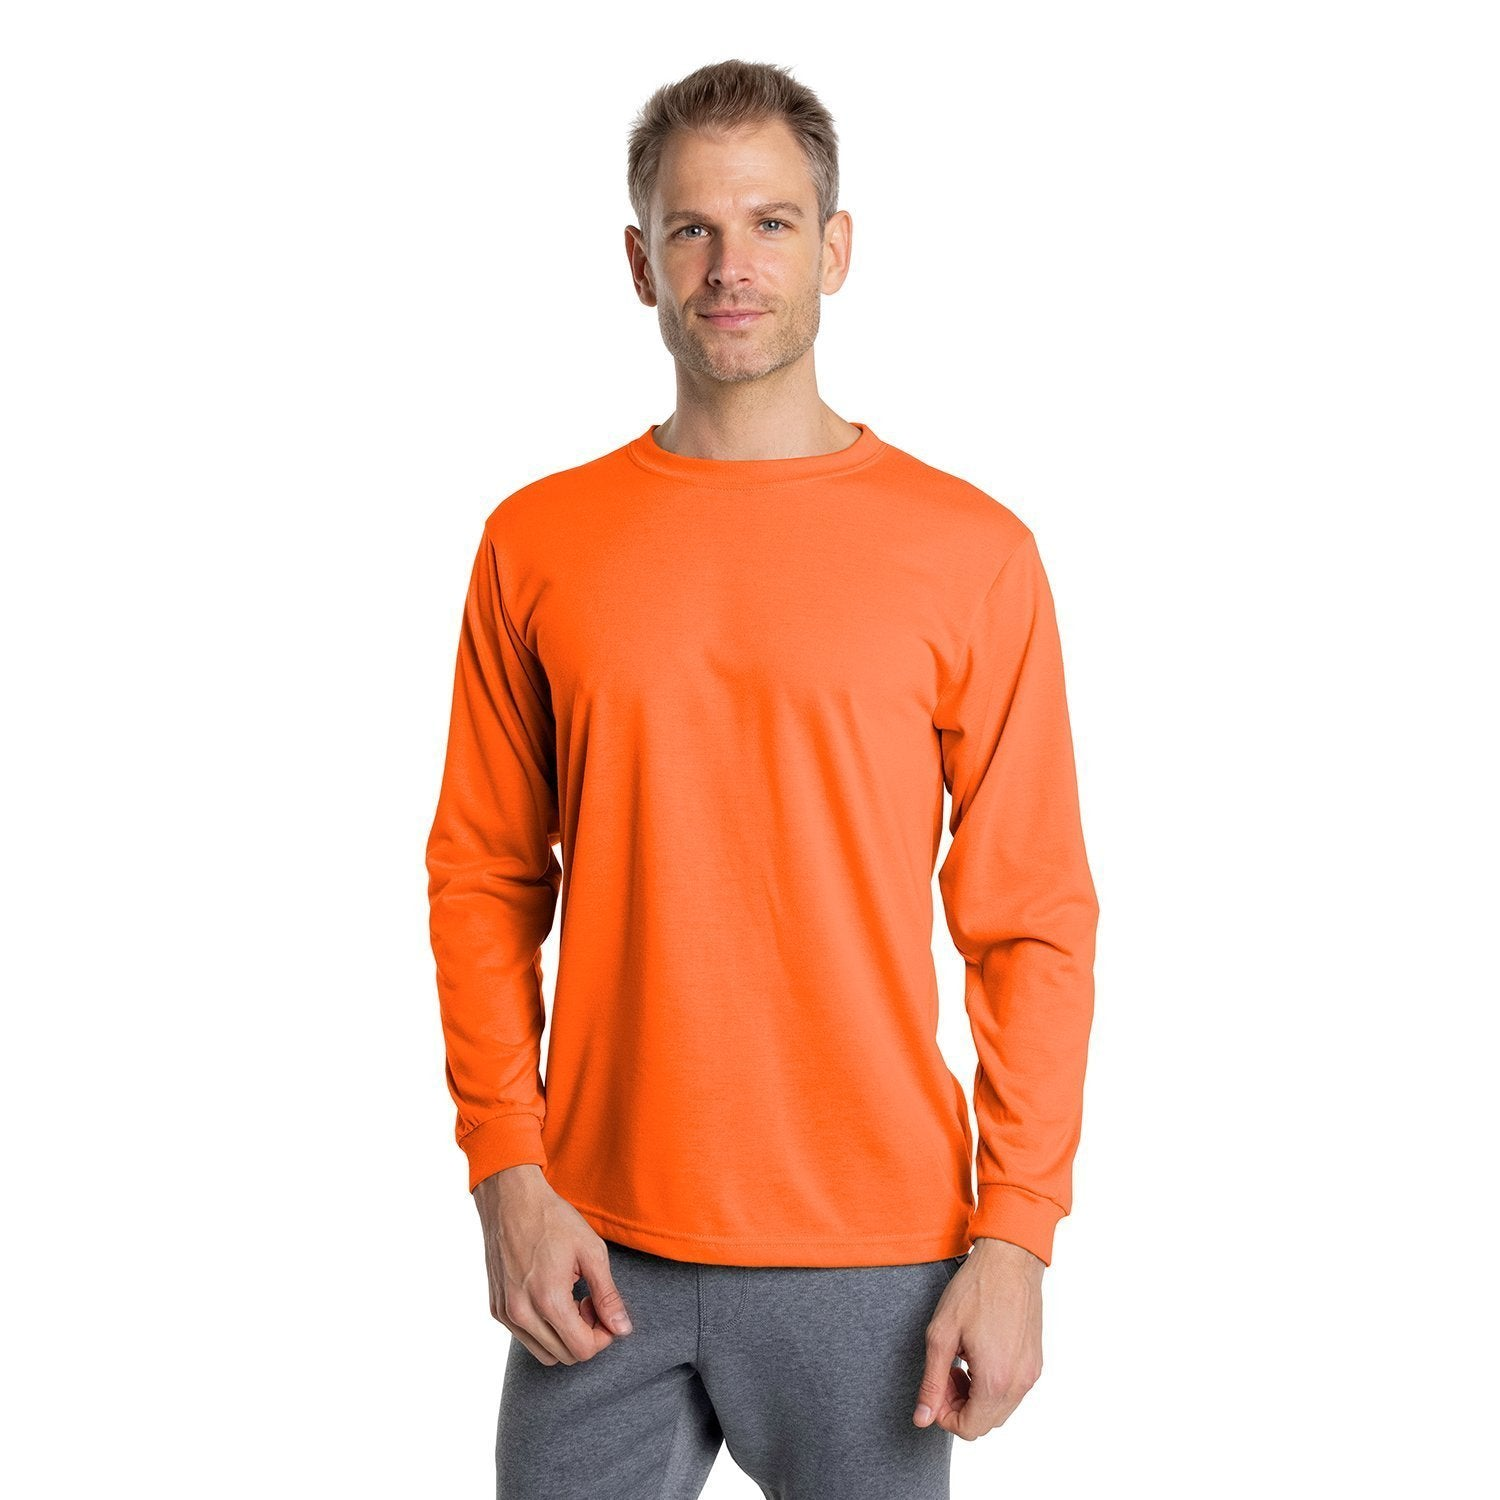 A1SJBLSO Basic Performance Long Sleeve T-Shirt - Safety Orange